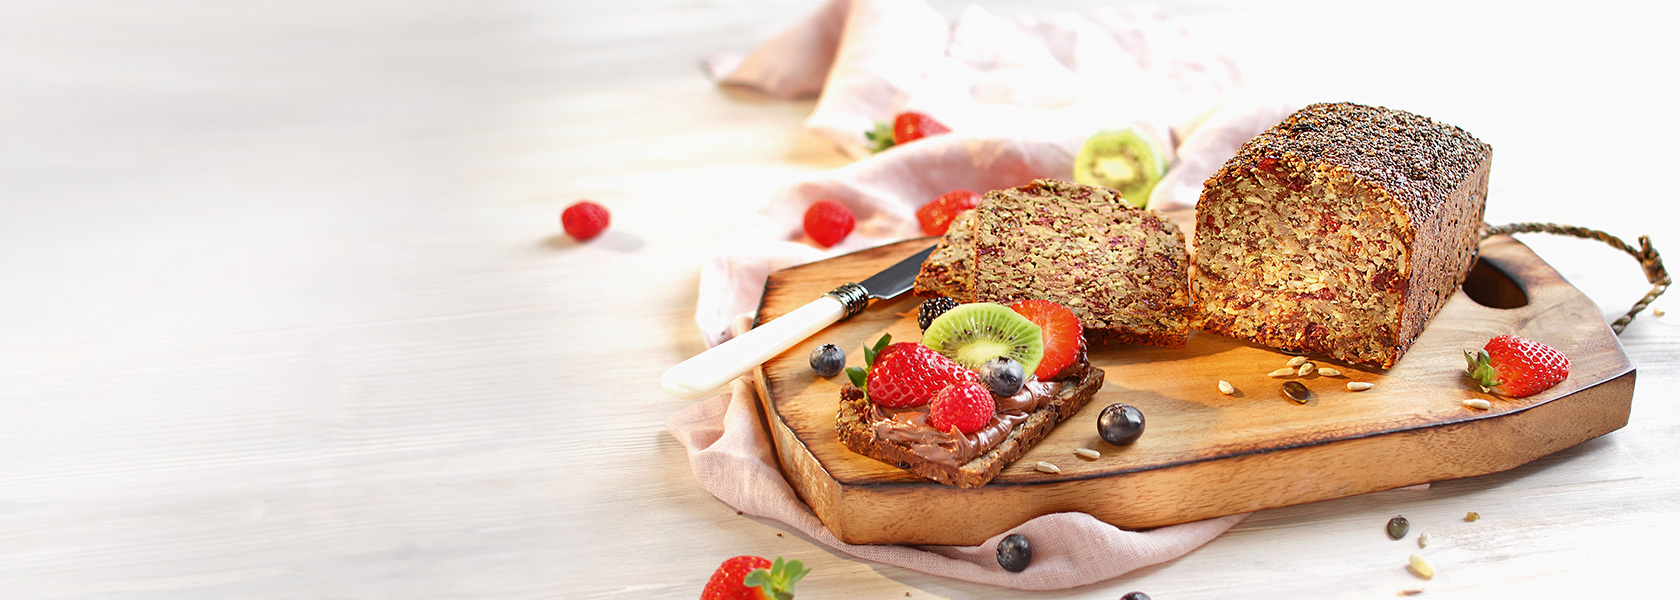 Art. 59989, Superfood Paleo Brot